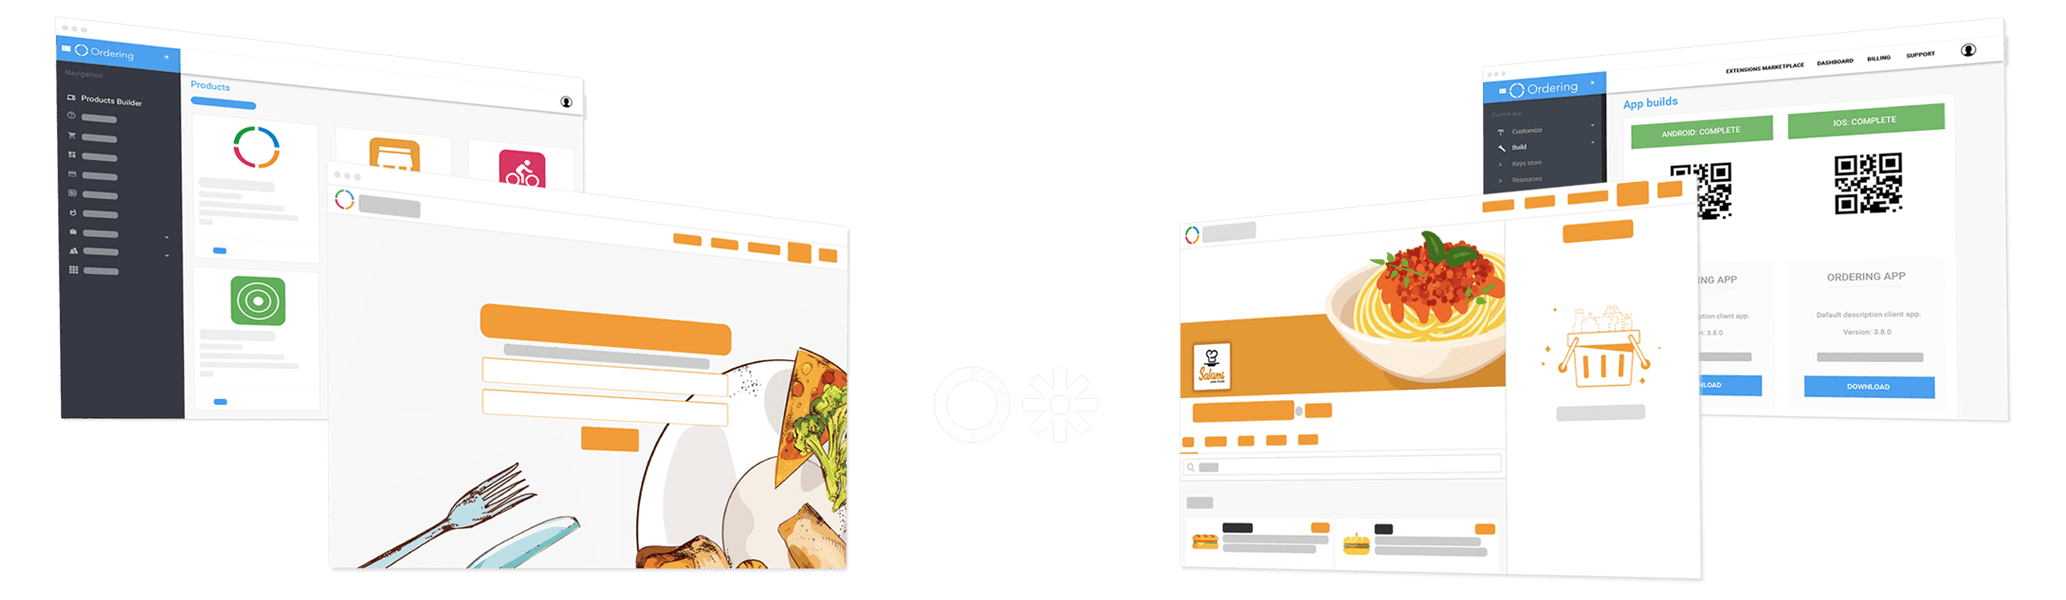 Ordering-Builder-Ordering-Editor-Ordering-Website-Zapier-min-min 2